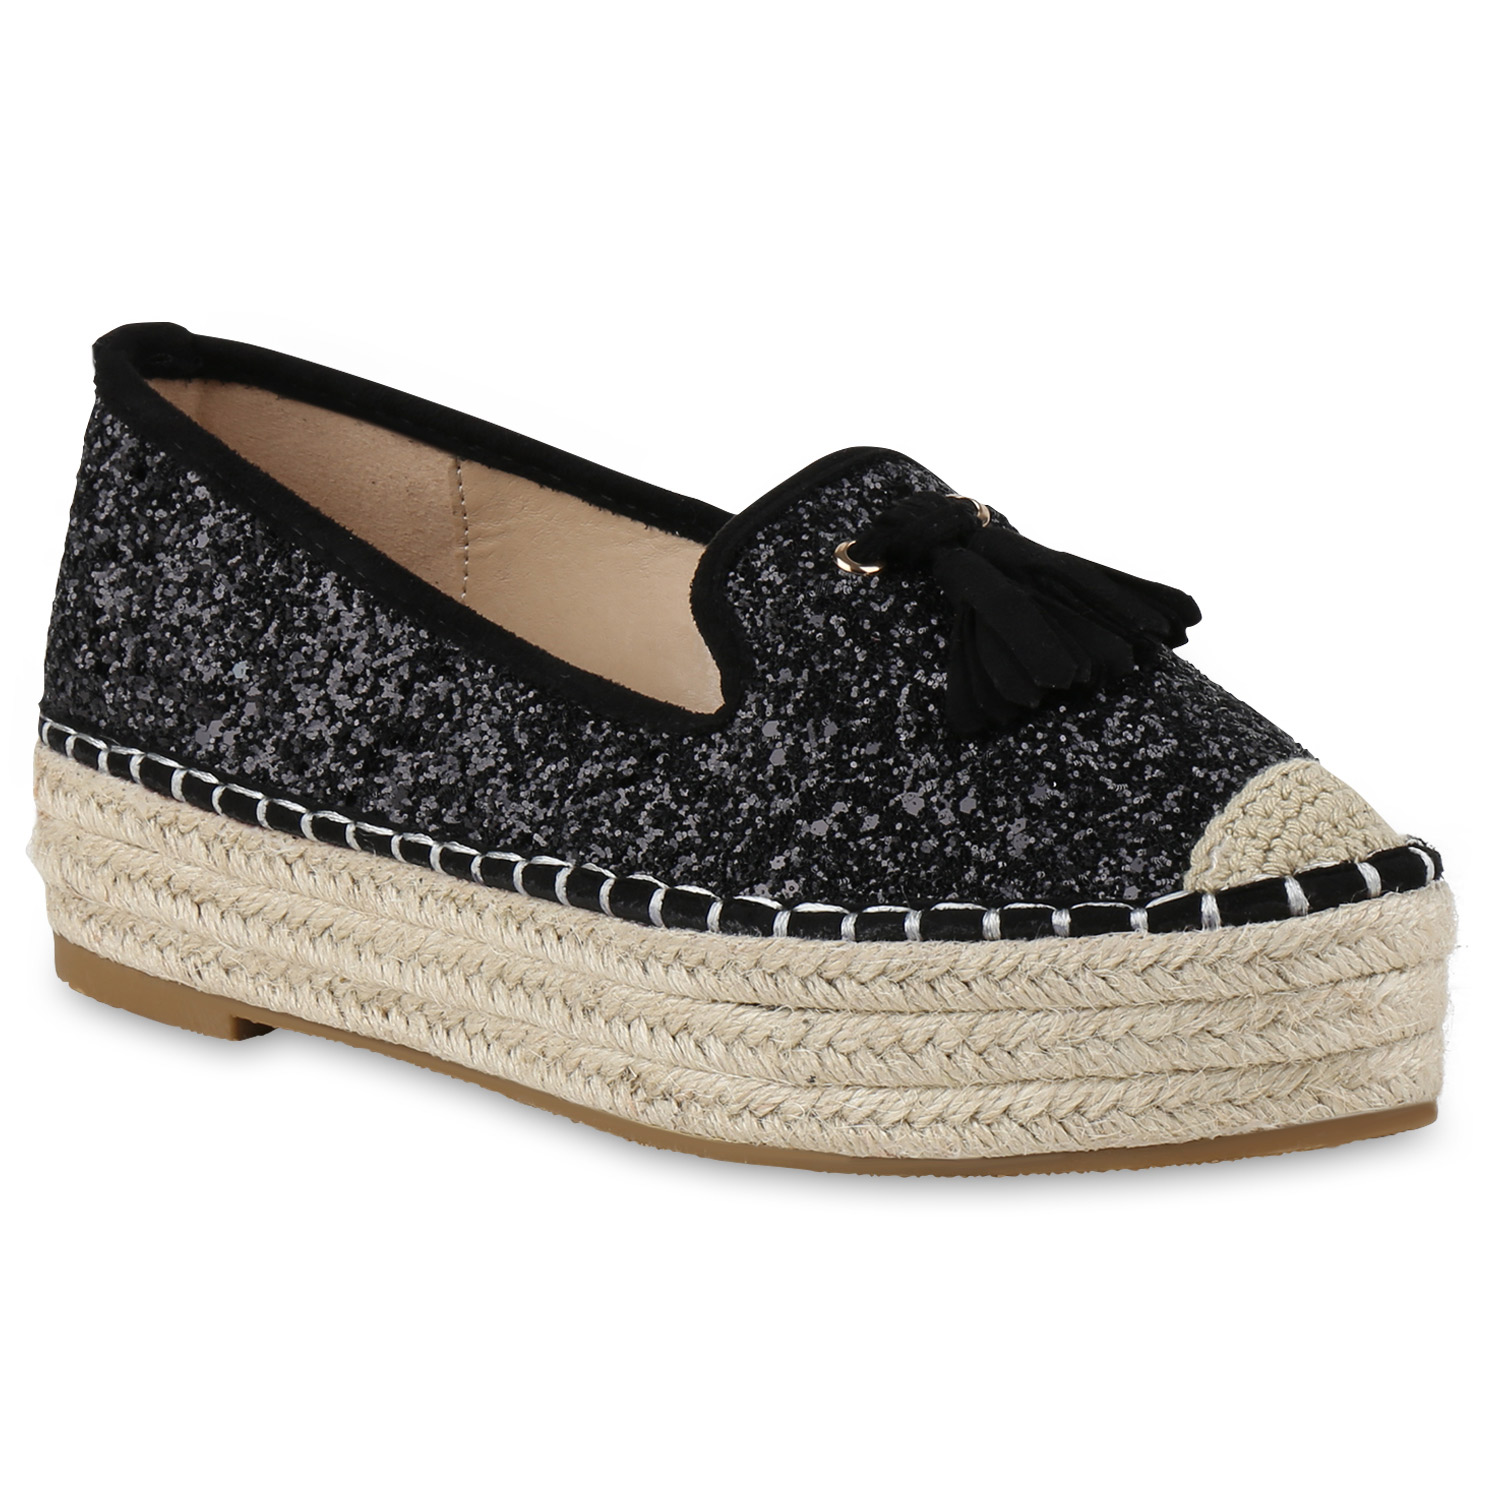 damen slipper plateauschuhe espadrilles bast glitzer schuhe 814667 ebay. Black Bedroom Furniture Sets. Home Design Ideas